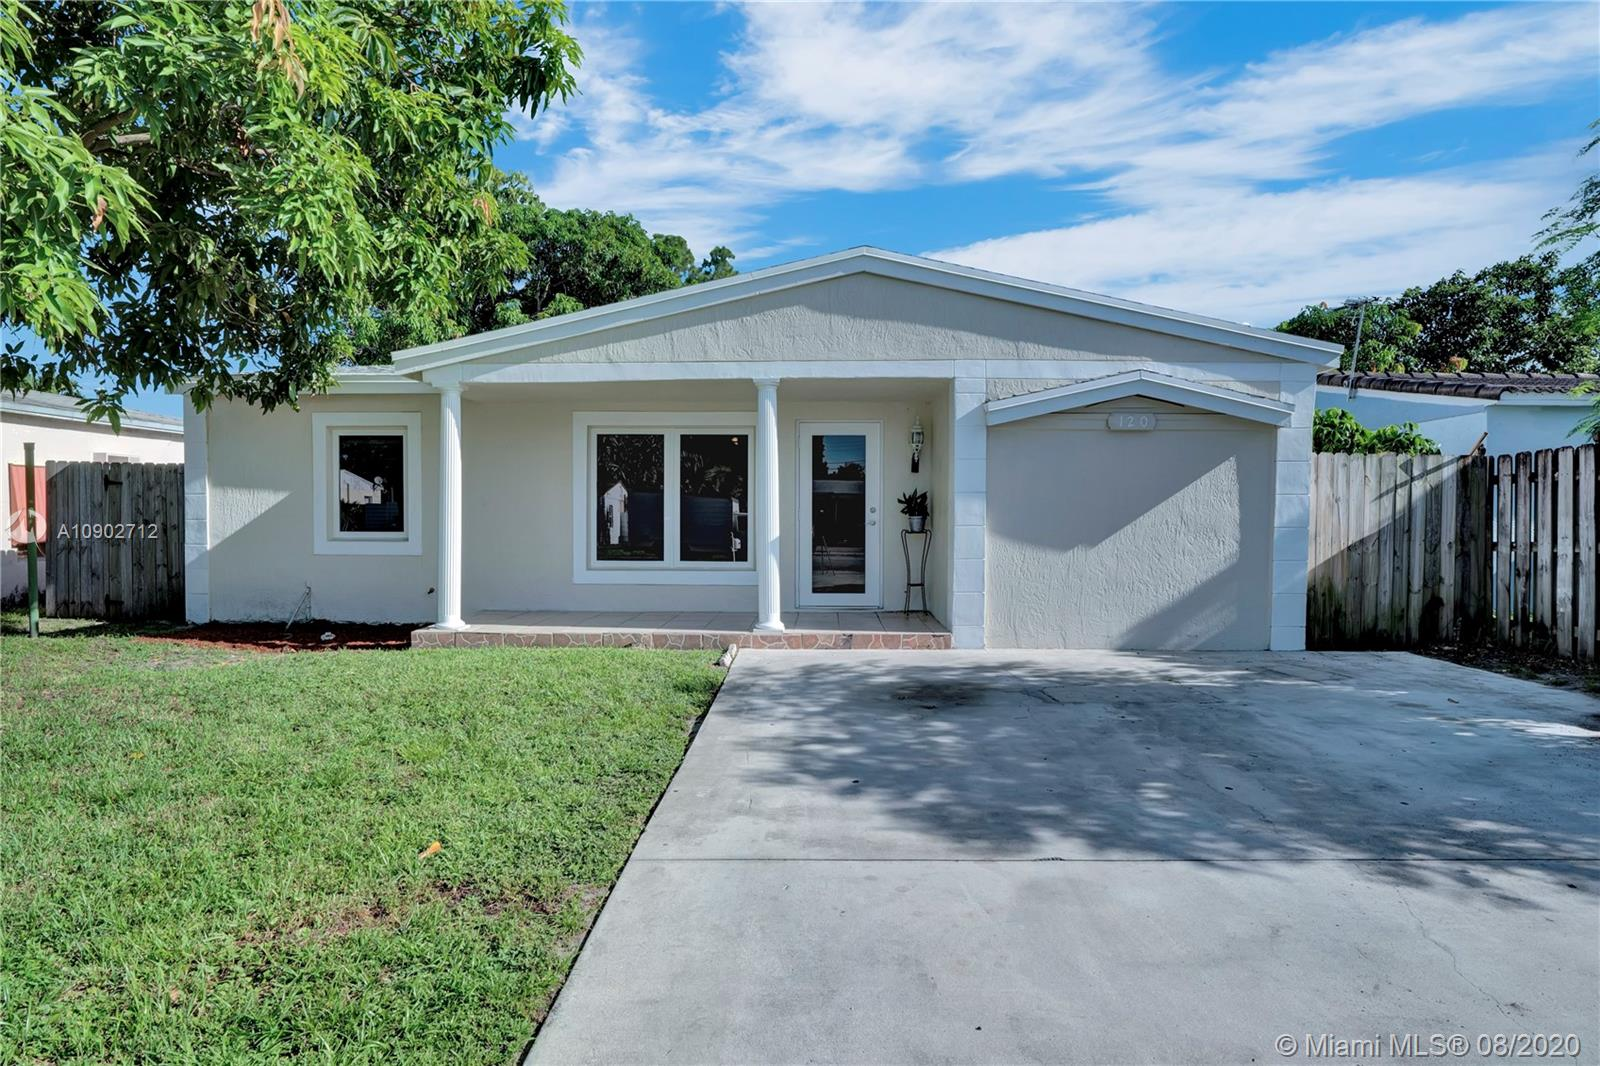 Beautiful home in a great location. New impact windows and doors. Newer roof from 2018. Tile floors throughout the house. Granite counters in the kitchen. New pantry doors. Fenced backyard with a lot of space. Palm trees in the backyard. Spacious driveway.